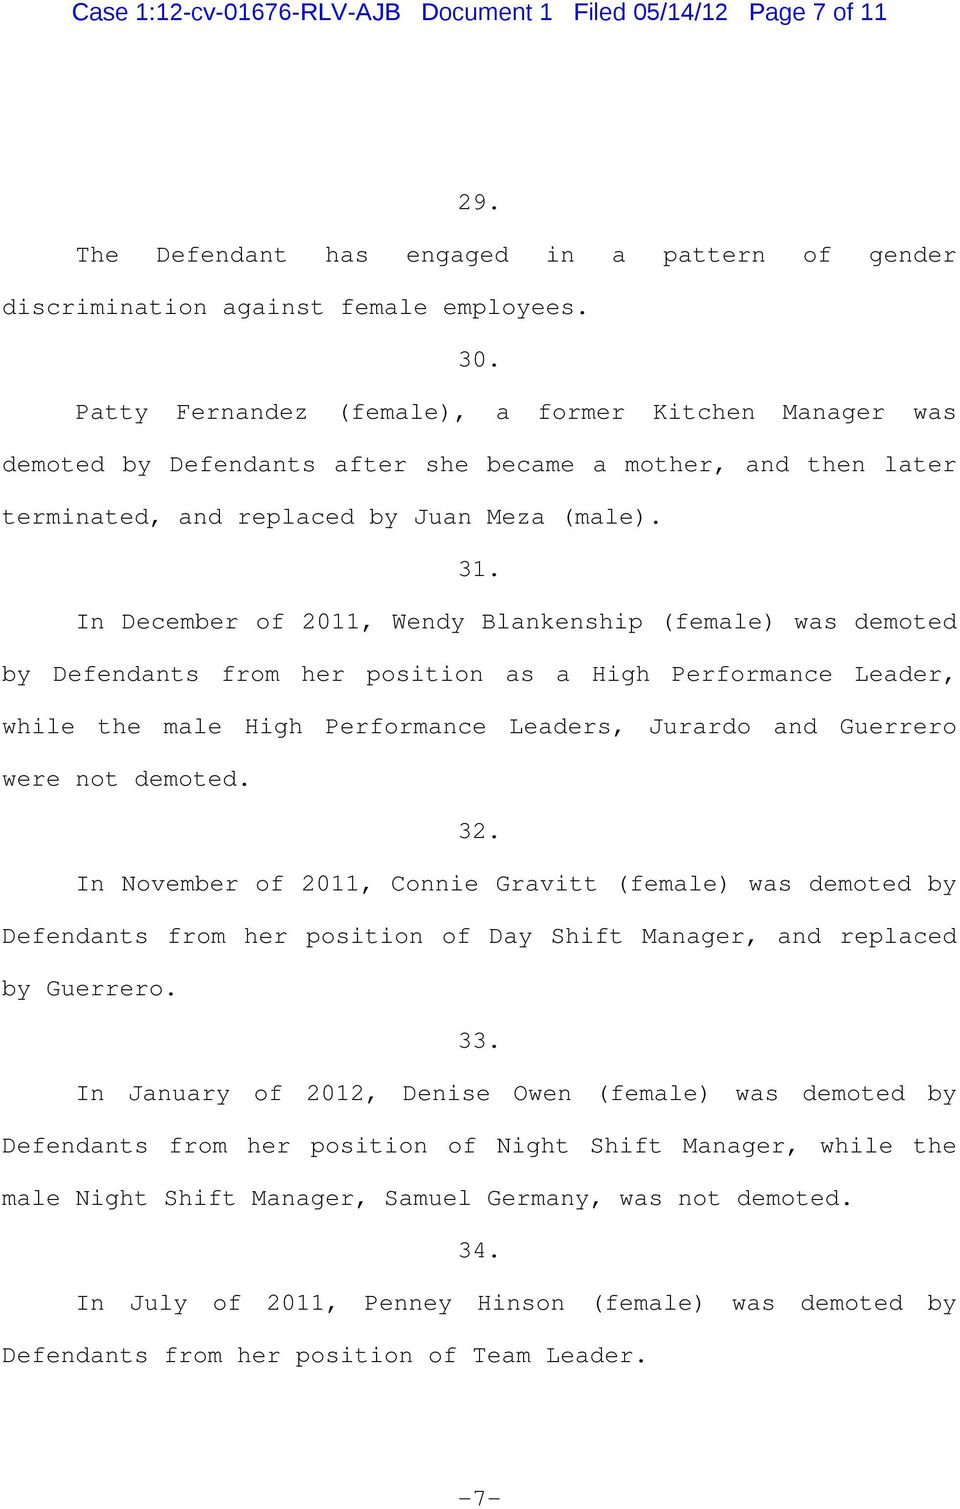 In December of 2011, Wendy Blankenship (female) was demoted by Defendants from her position as a High Performance Leader, while the male High Performance Leaders, Jurardo and Guerrero were not